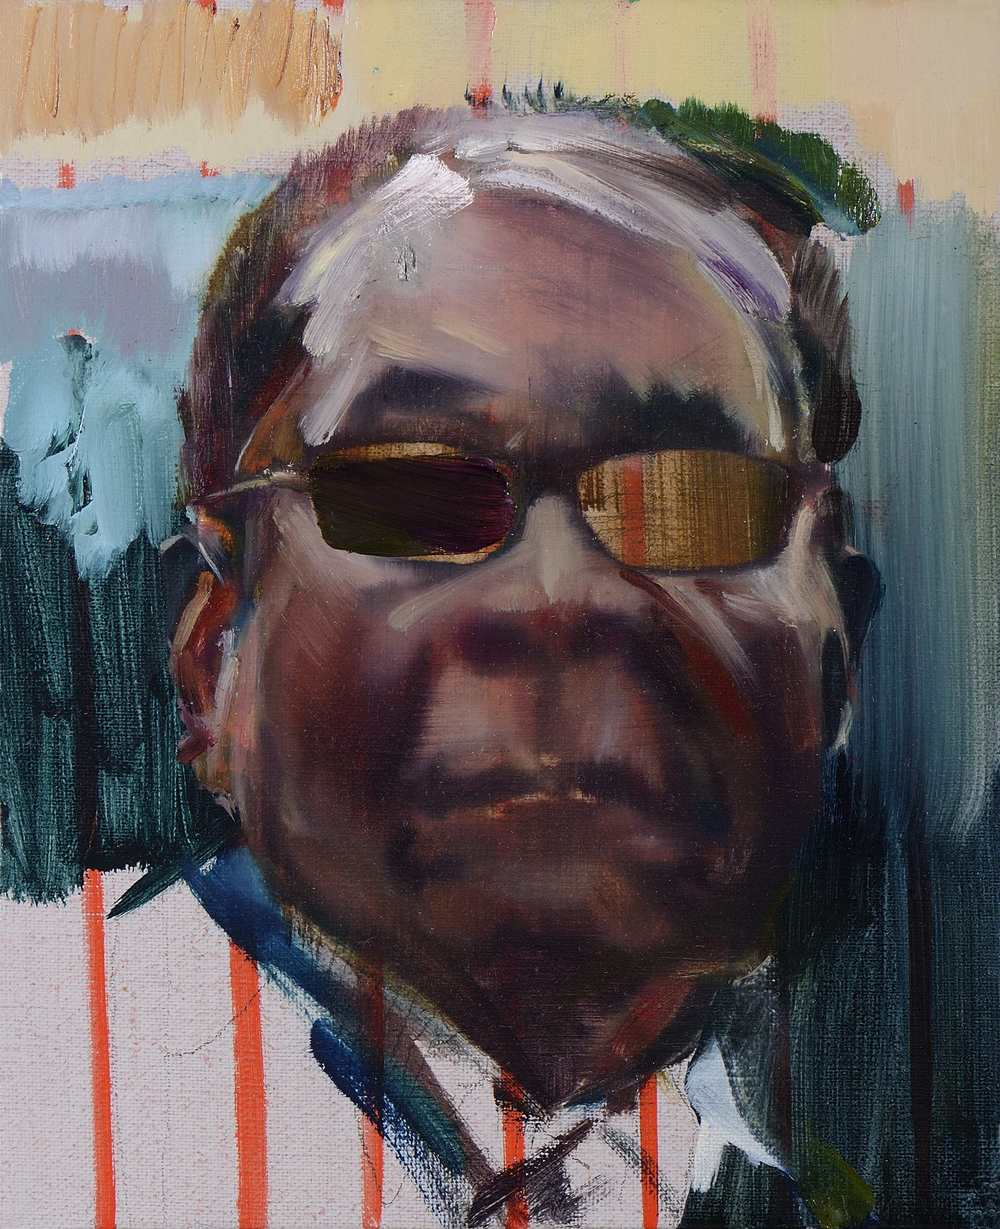 Petit Mugabe 3 , 2012, oil on canvas, 27 x 22cm. Private collection, France